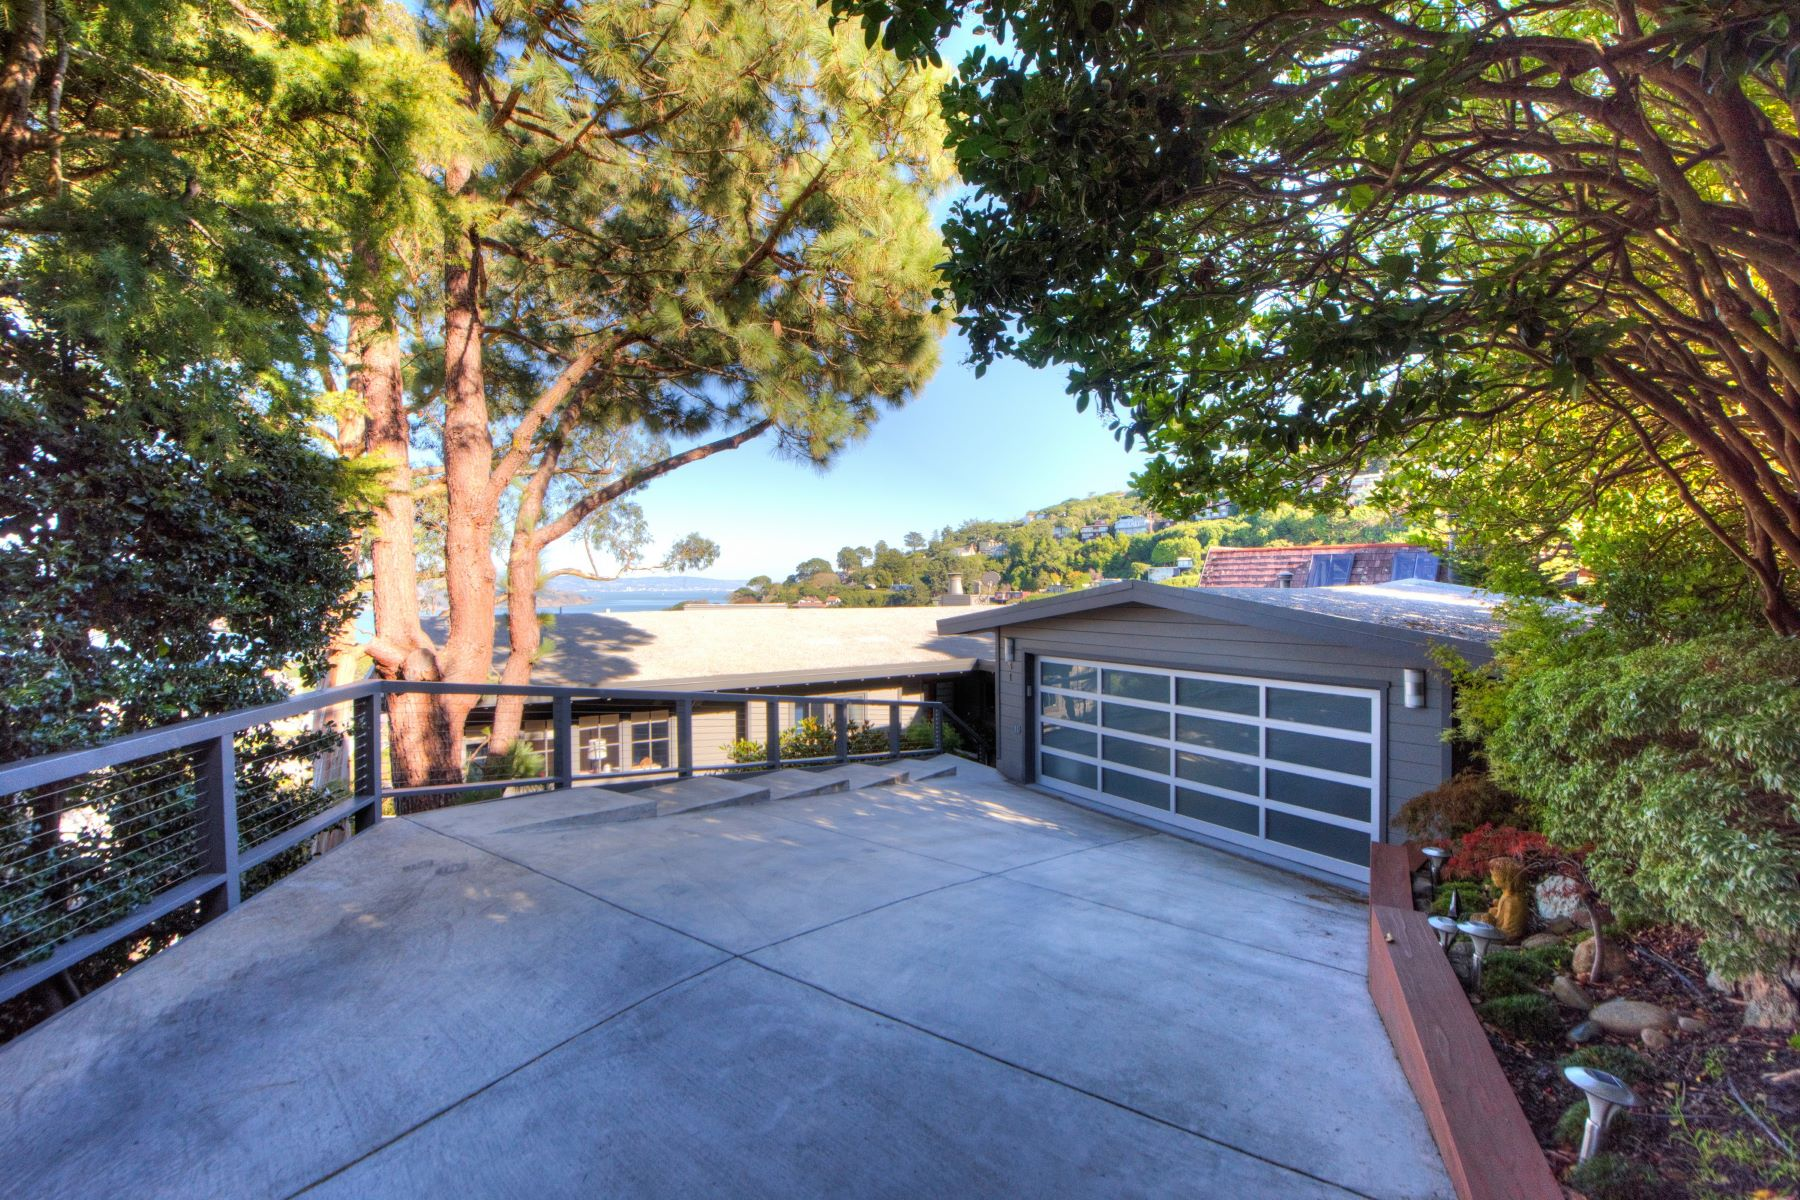 Casa Unifamiliar por un Venta en Contemporary with Stunning Bay Views! 51 George Lane Sausalito, California 94965 Estados Unidos